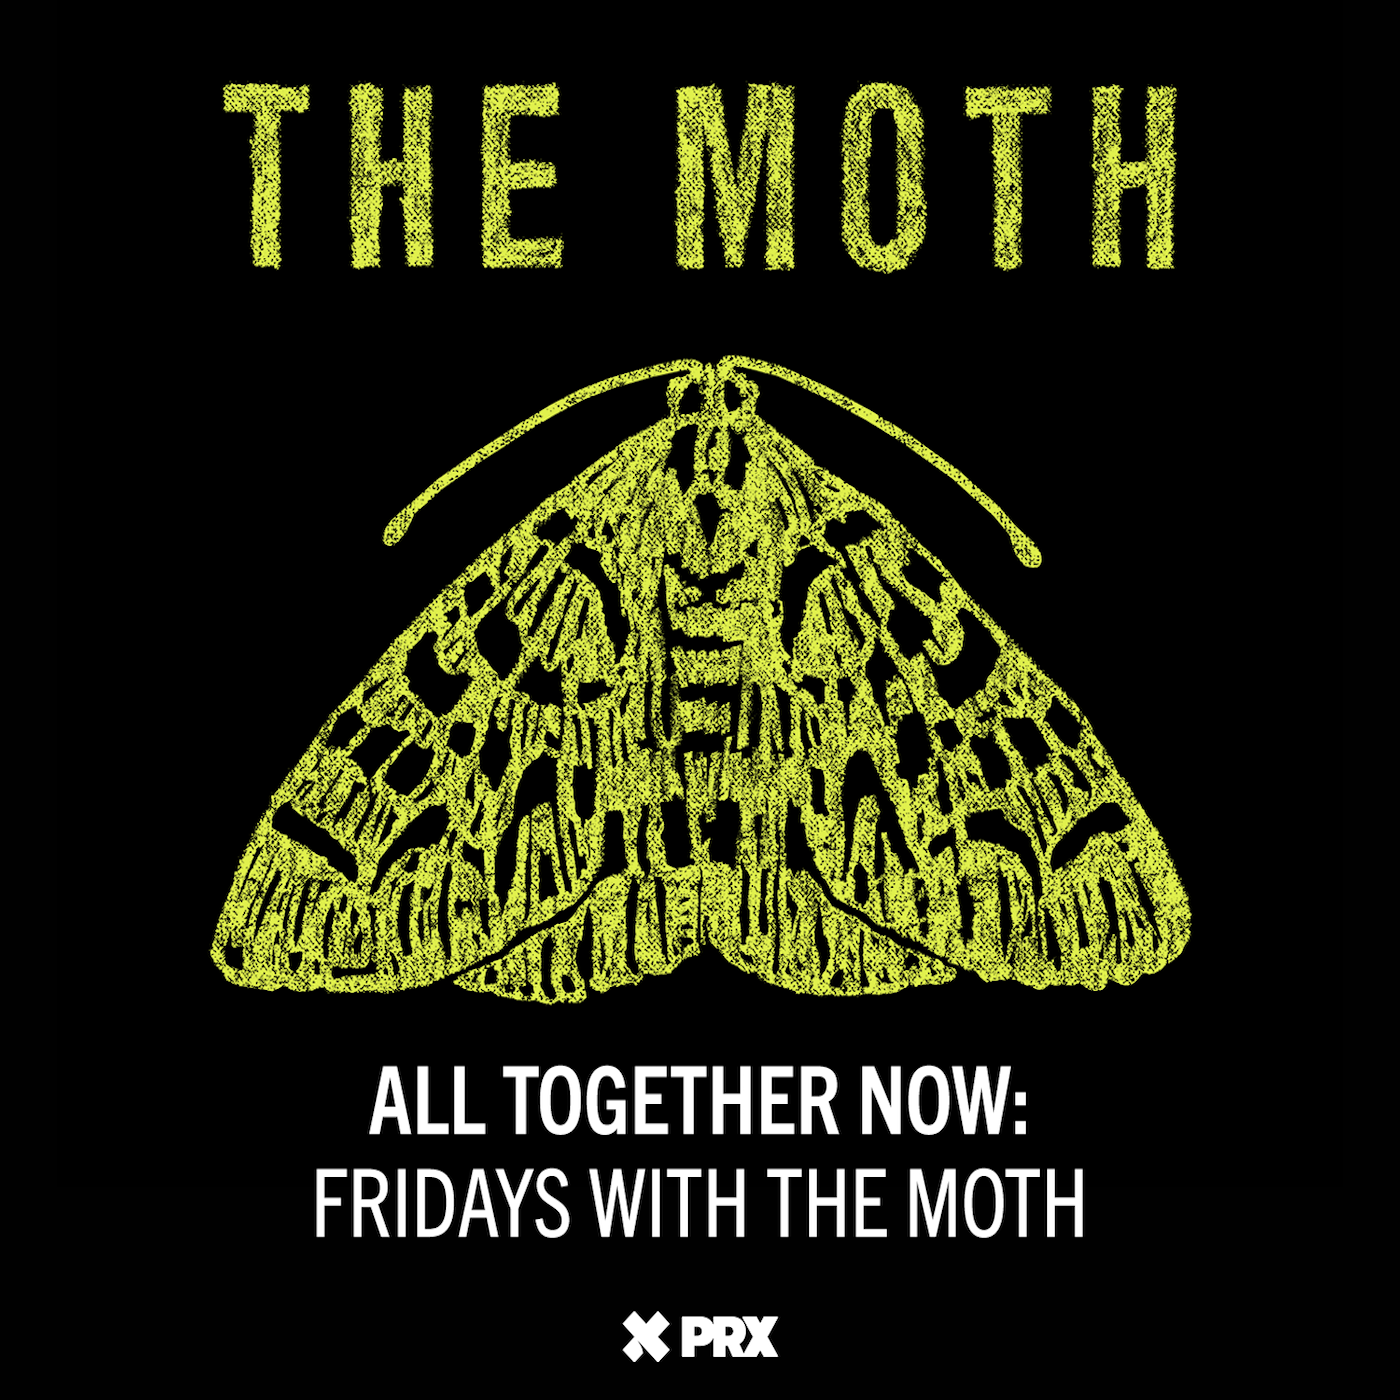 All Together Now: Fridays with The Moth - Grace Topinka & Pam Burrell